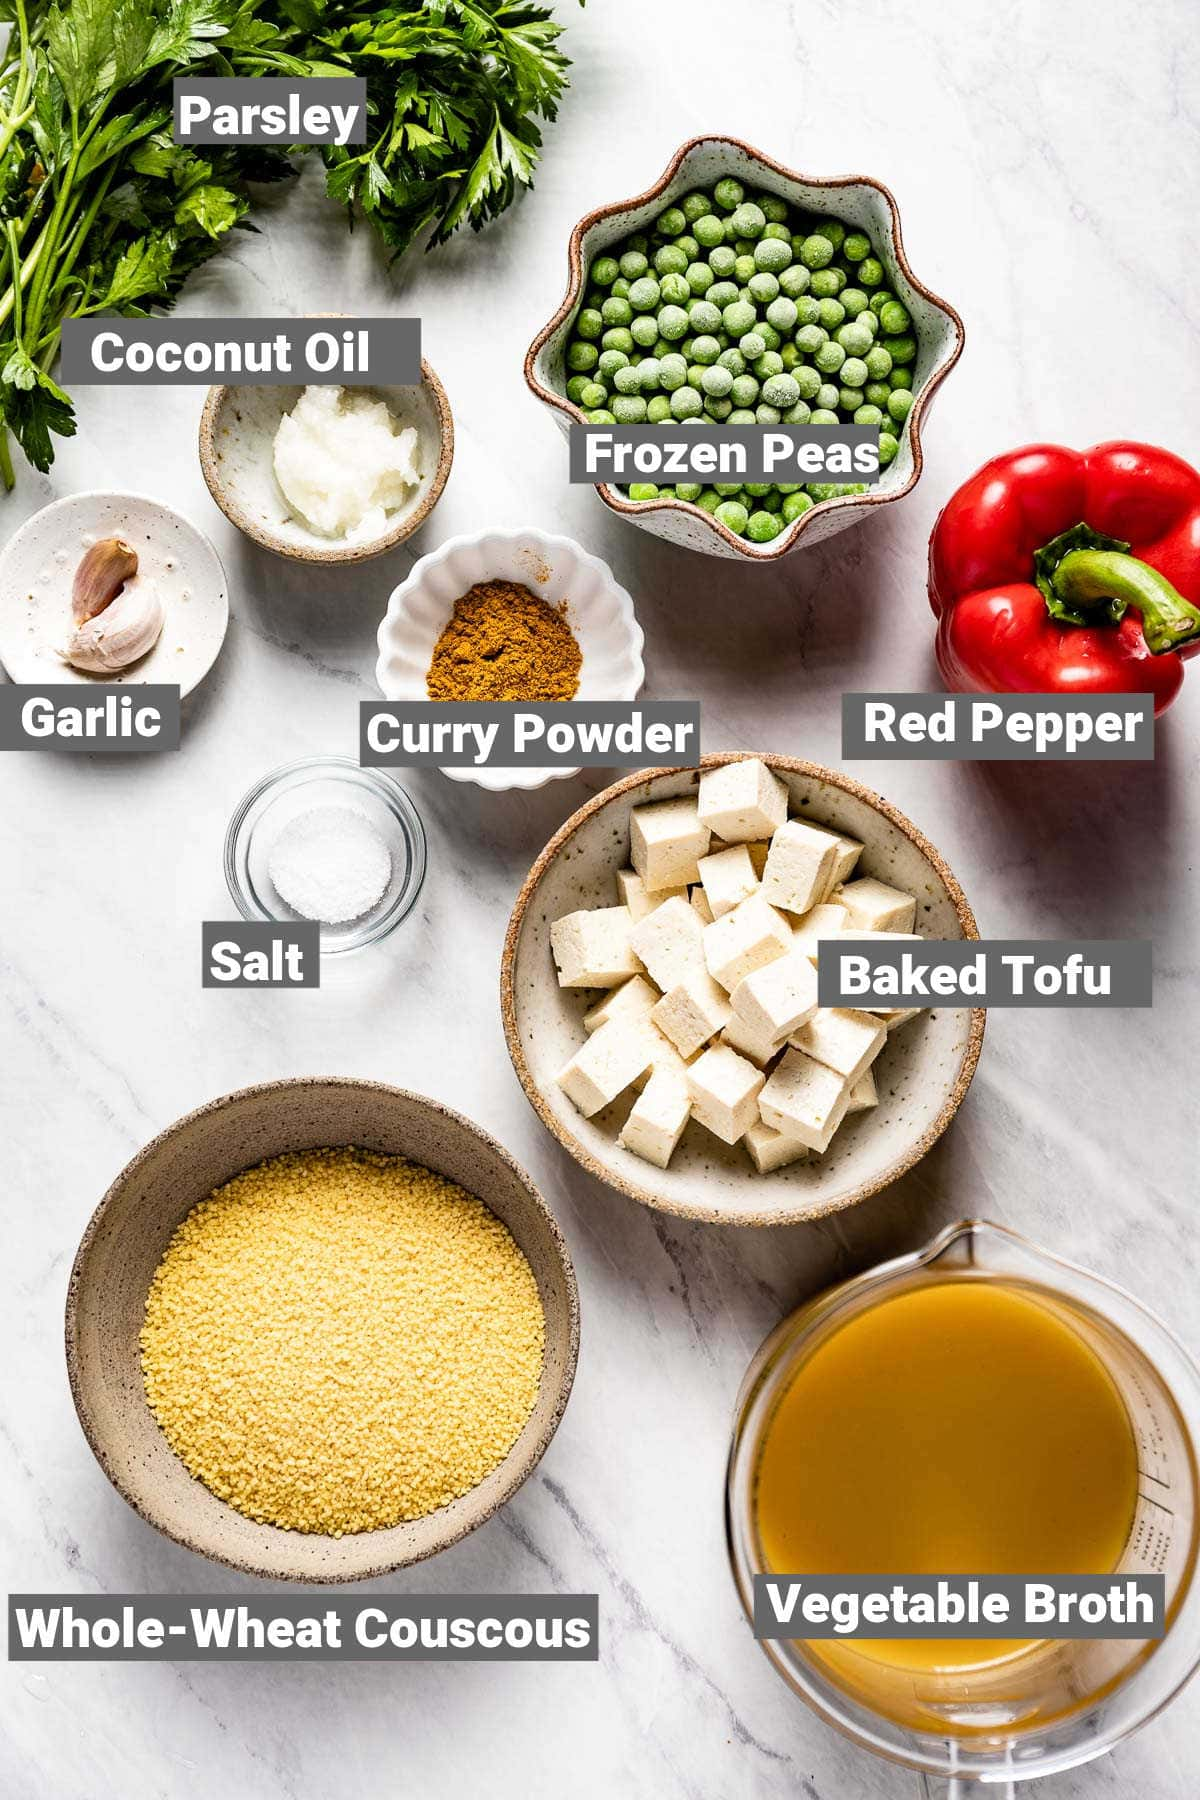 ingredients for this recipe with text overlay